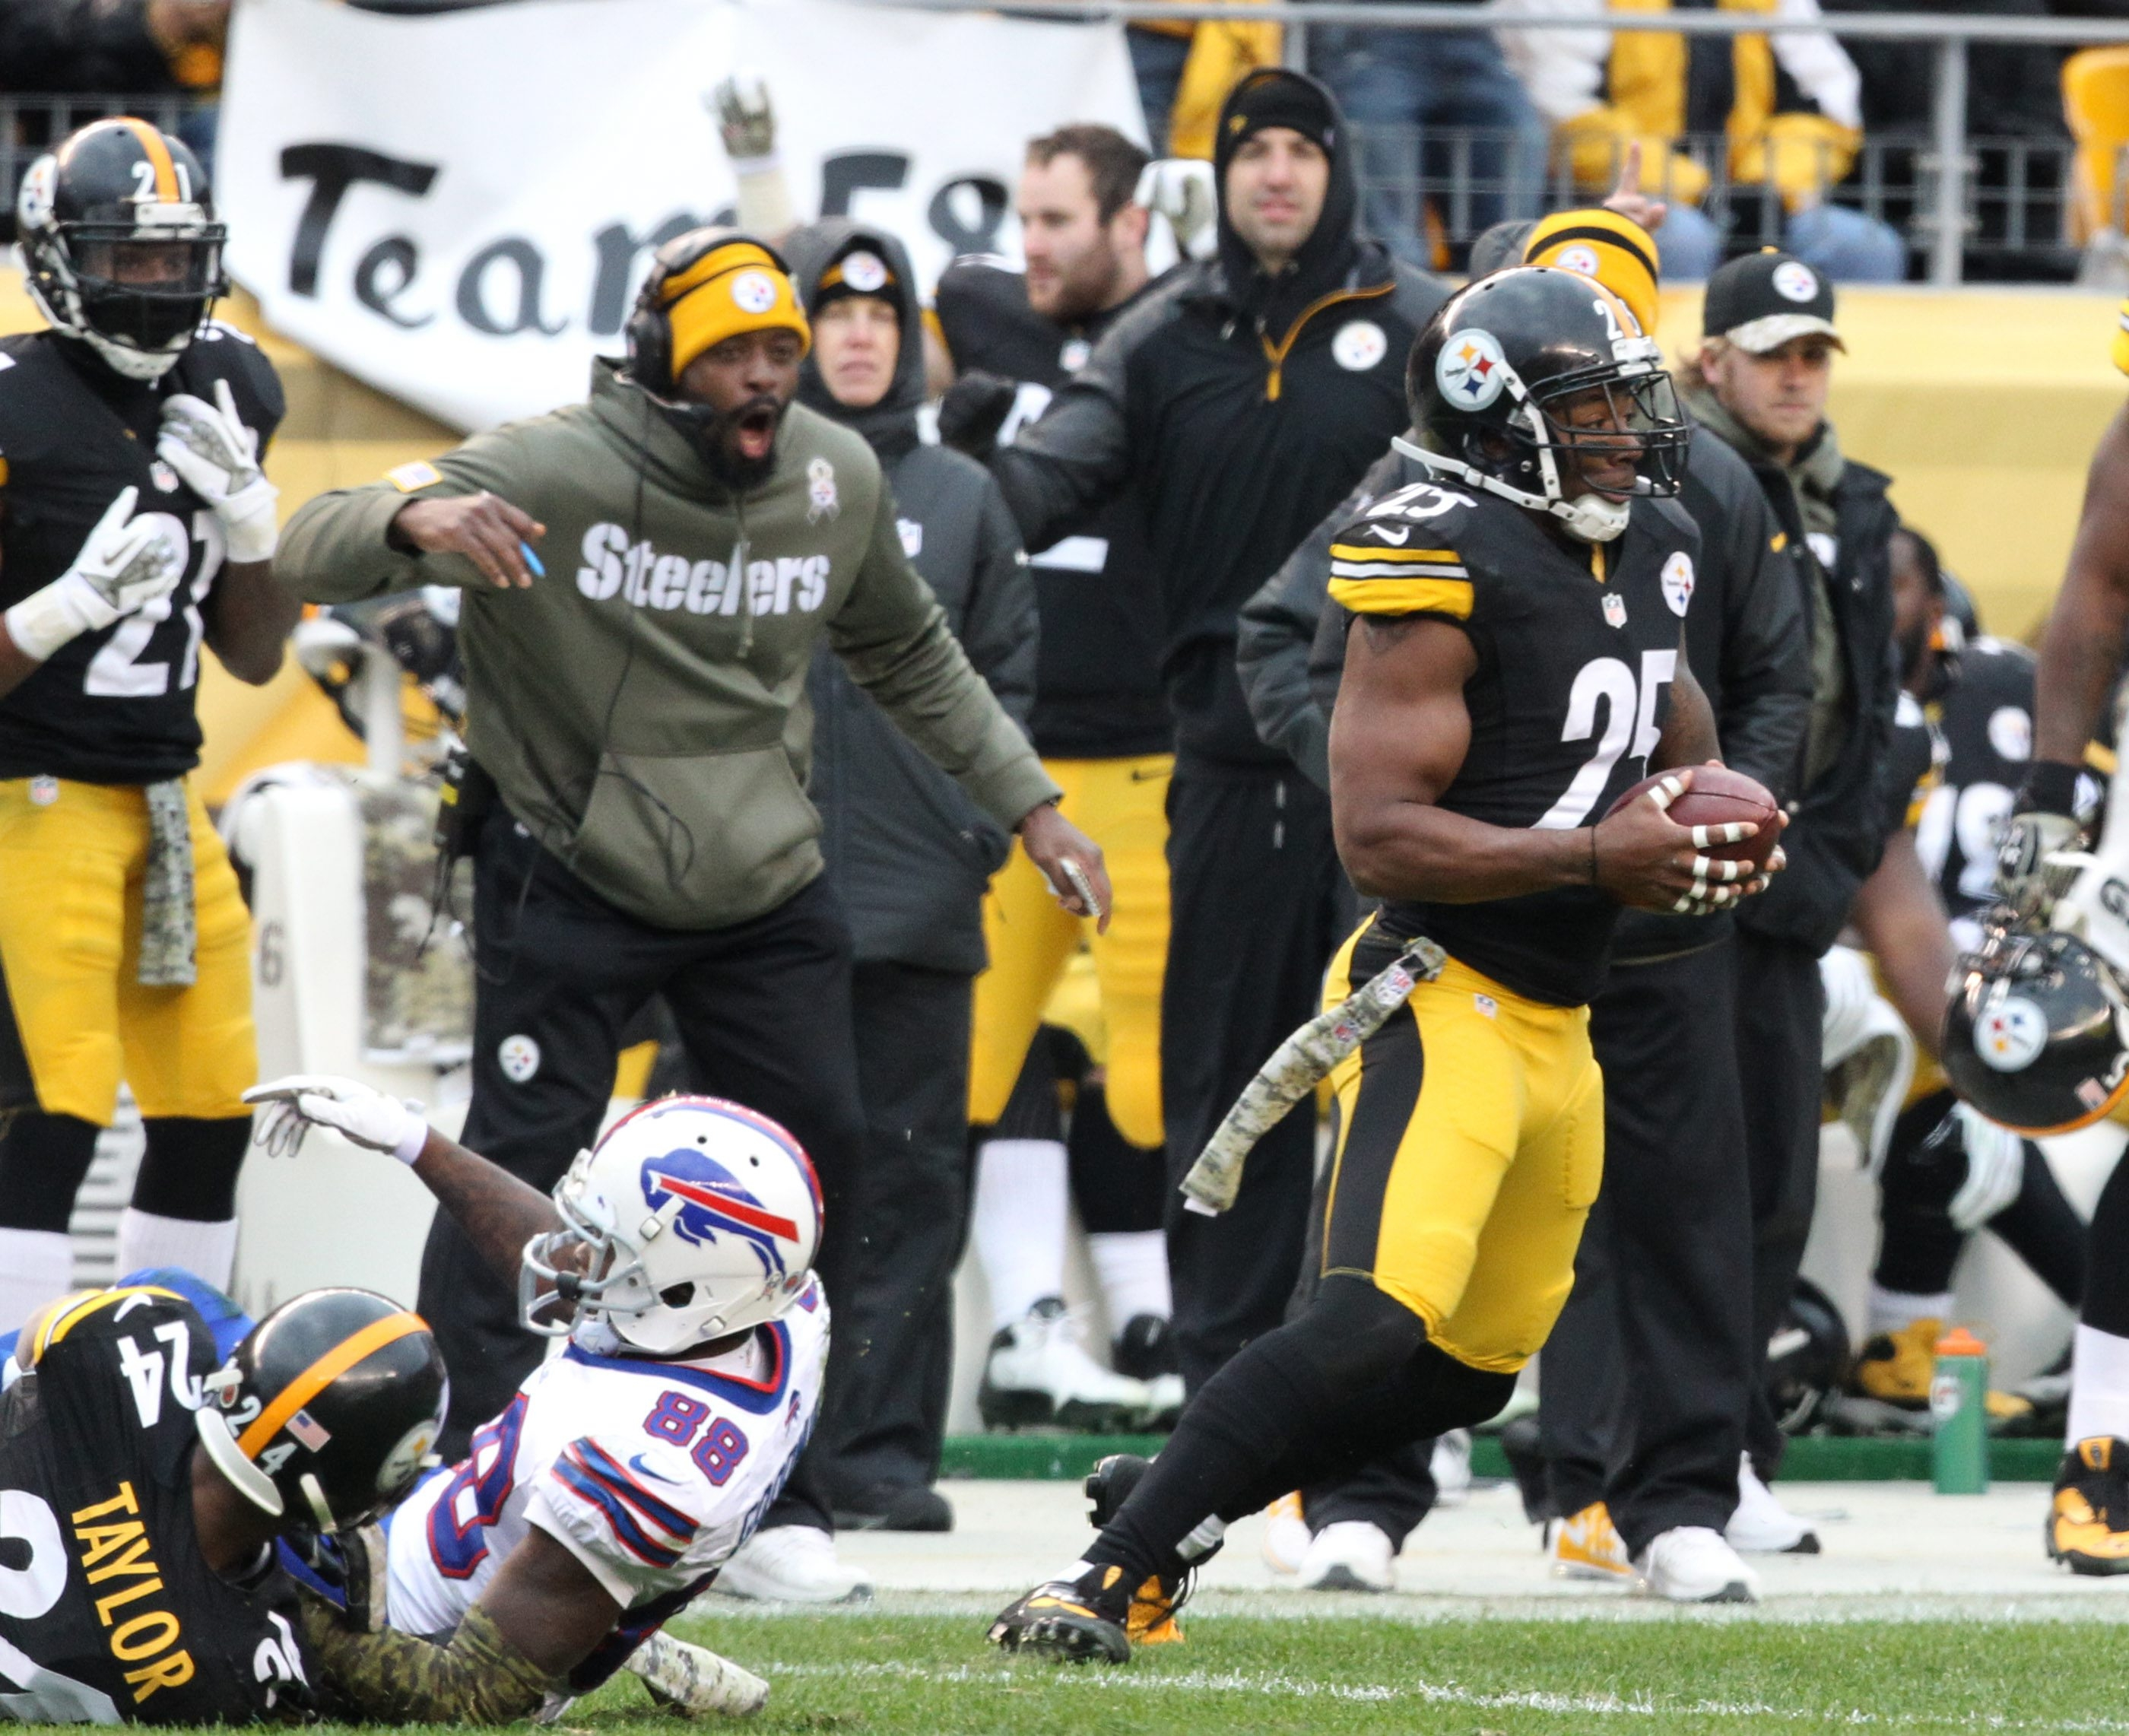 Steelers free safety Ryan Clark intercepts a first-down pass by EJ Manuel intended for Bills receiver Marquise Goodwin early in the fourth quarter.